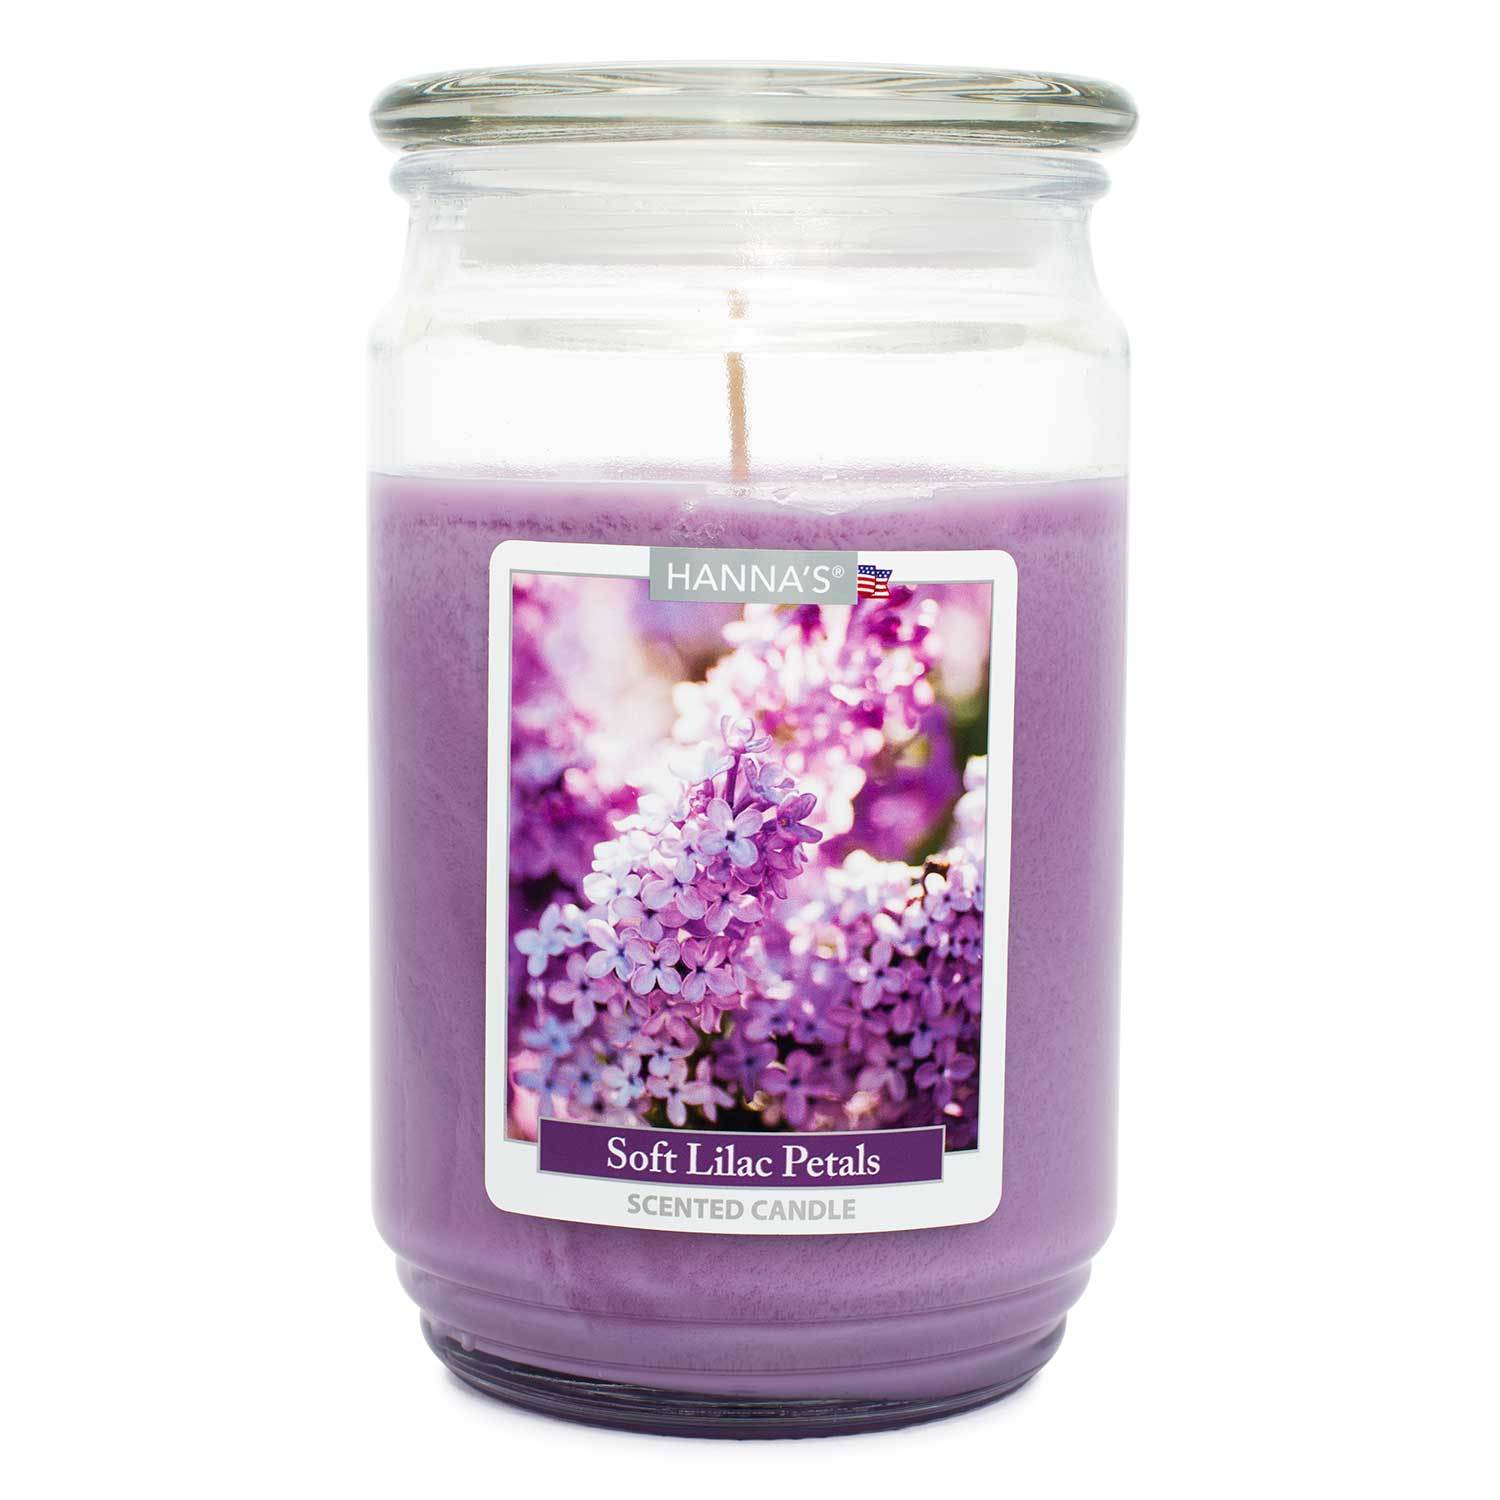 Soft Lilac Petals Scented Large Candle Candles Candlemart.com $ 12.99